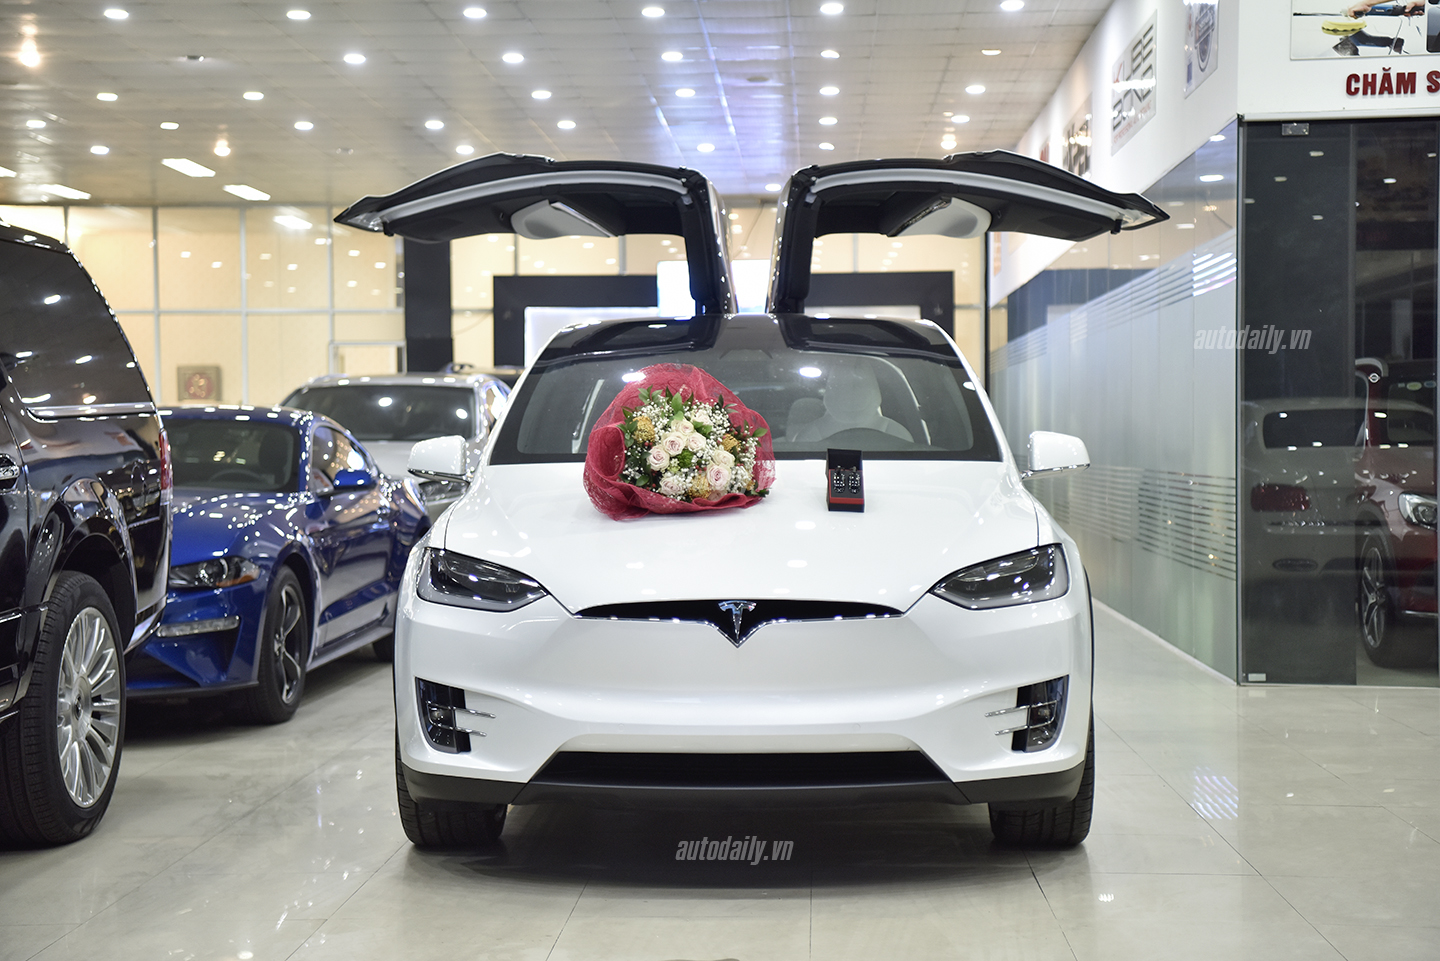 tesla-model-x-autodaily-dsc1454-copy.jpg